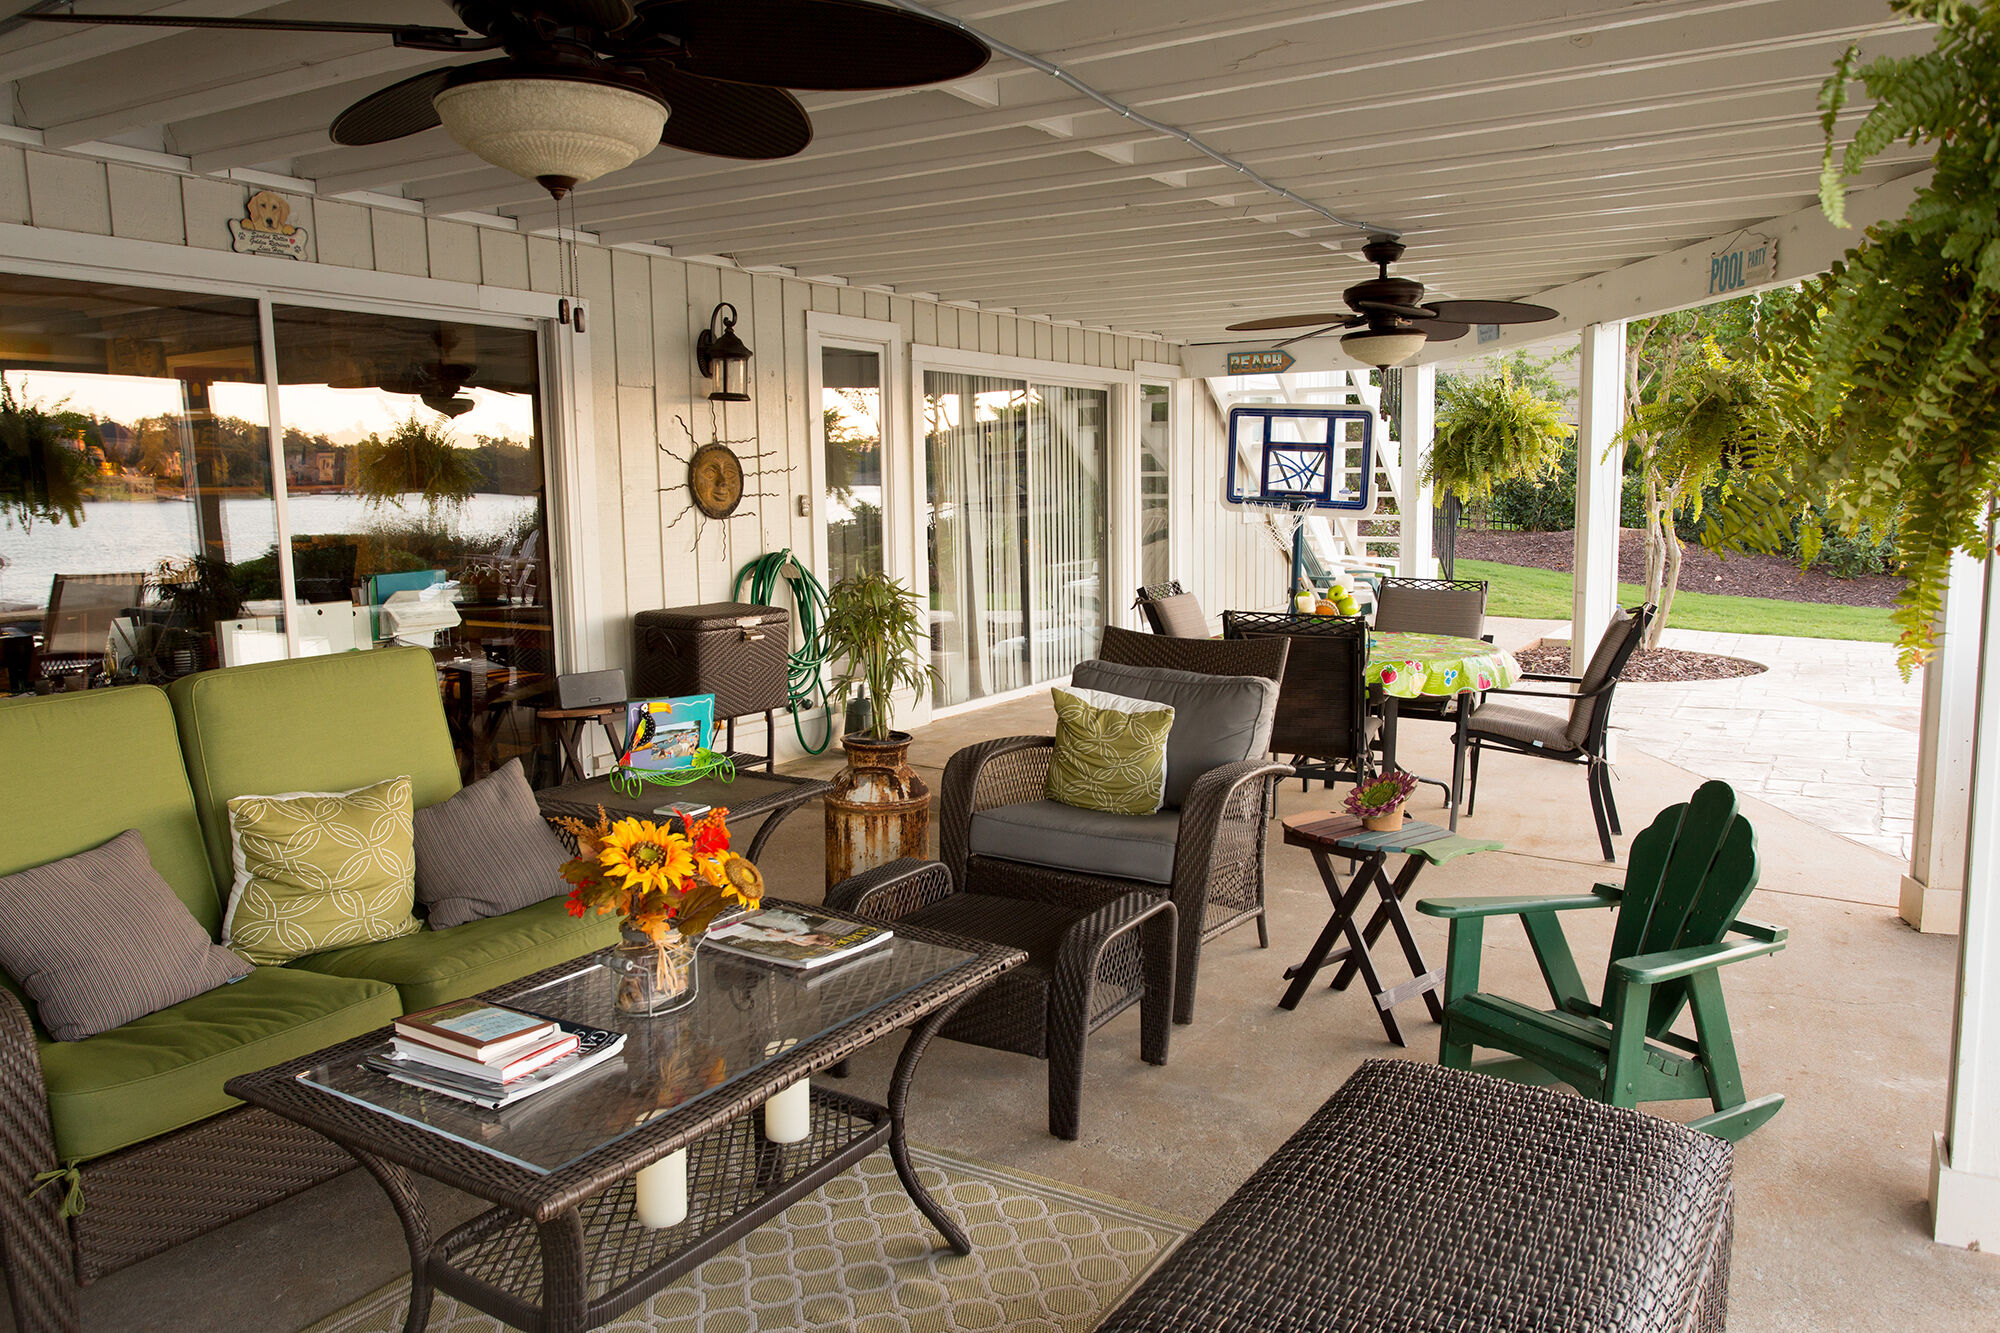 The dry-below area created by Duradek served the homeowner's as a poolside entertainment space.